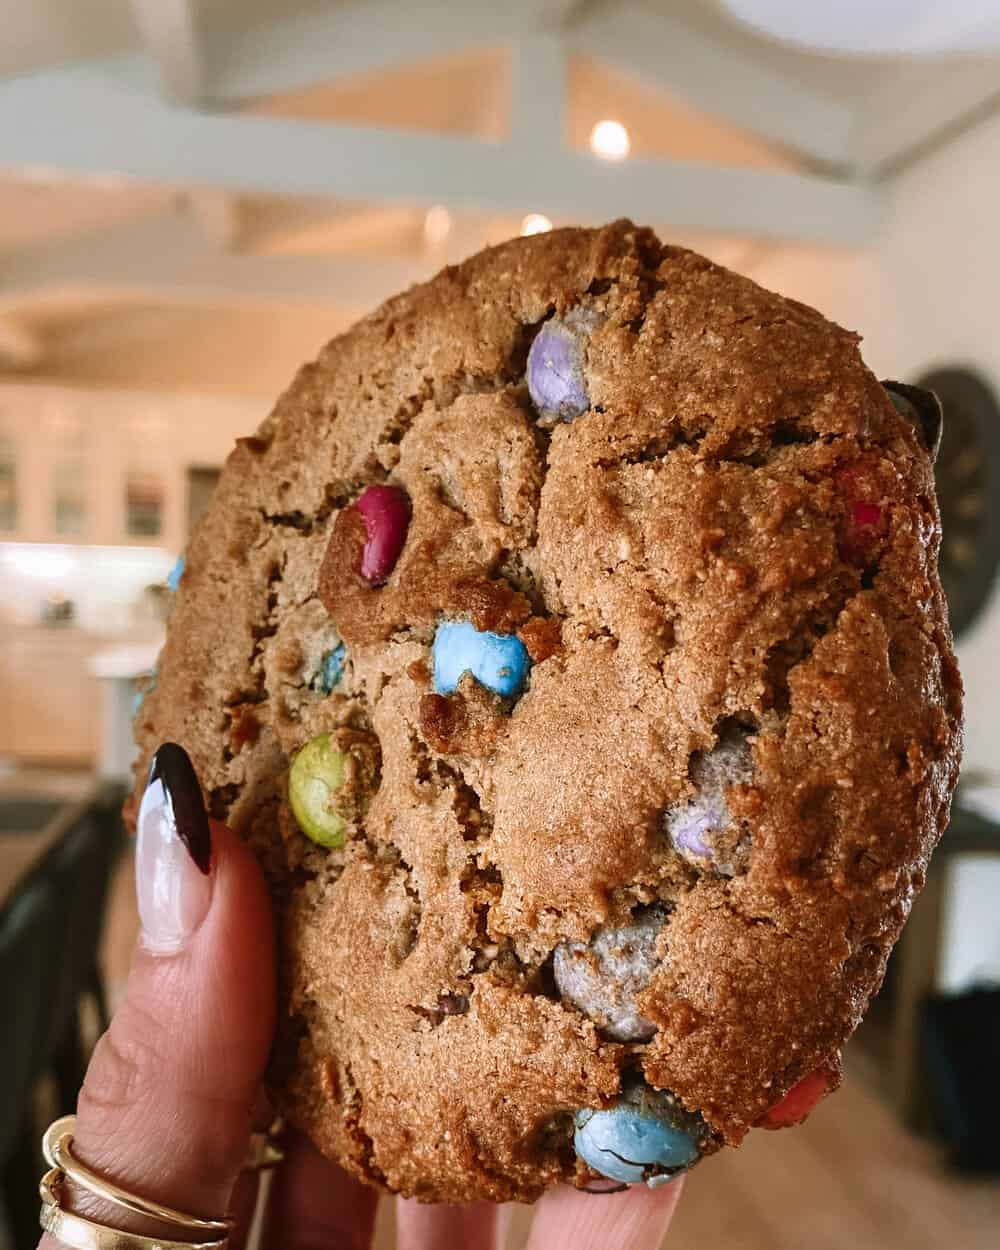 GIANT CHOCOLATE CHIP COOKIE - INGREDIENTS1/4 cup almond flour3 tb creamy almond butter2 tb maple syrup1/2 tsp vanilla extract1/4 cup dairy free chocolate chips 1 tsp ground flax seed (or 1/2 of one egg—whisk one egg in a bowl and just use 1/2)1/2 tsp baking soda.